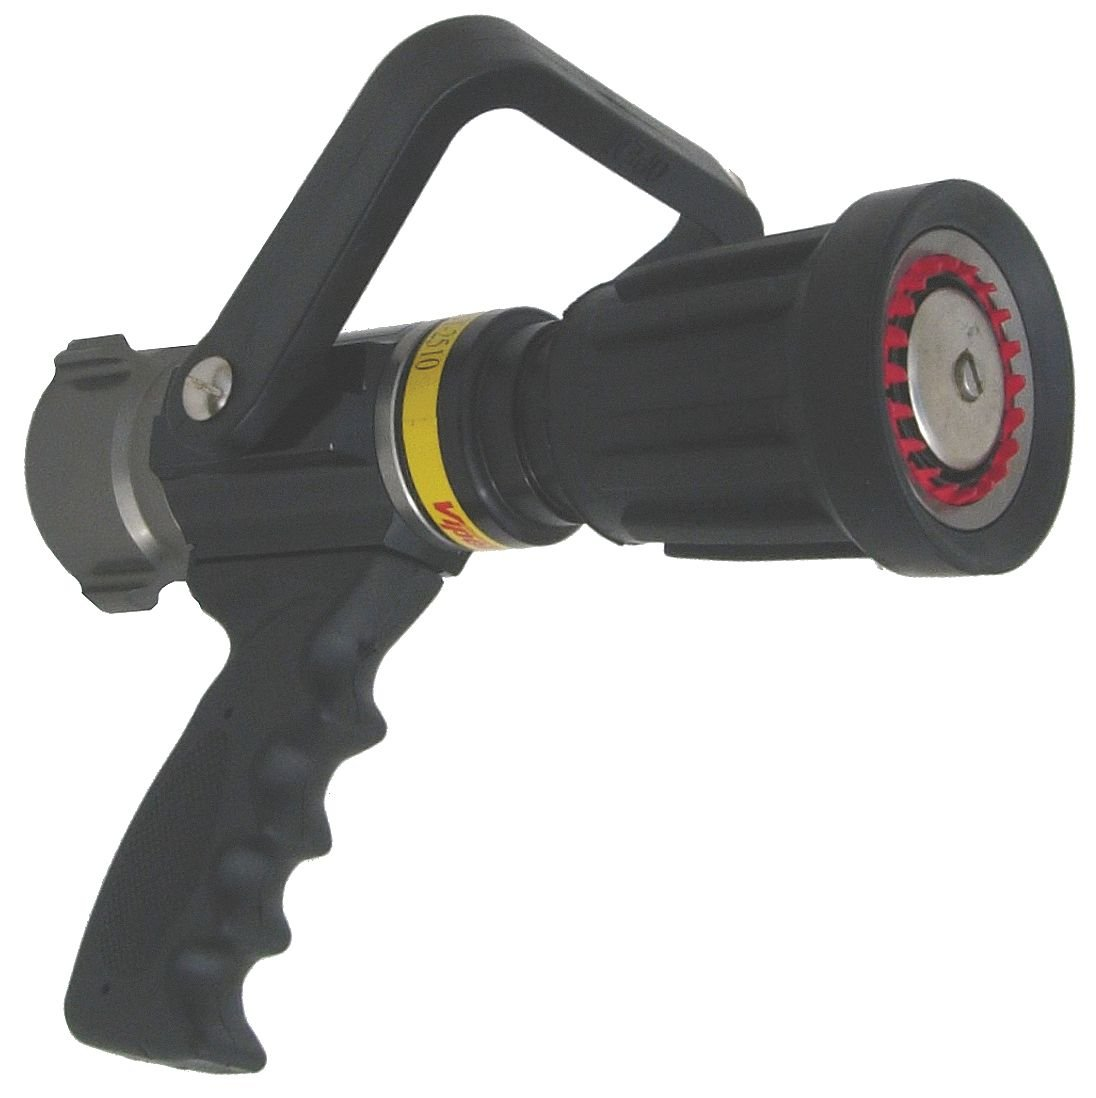 National Fire Equipment - ST2510-PV - Fire Hose Nozzle, 1-1/2 In., Black